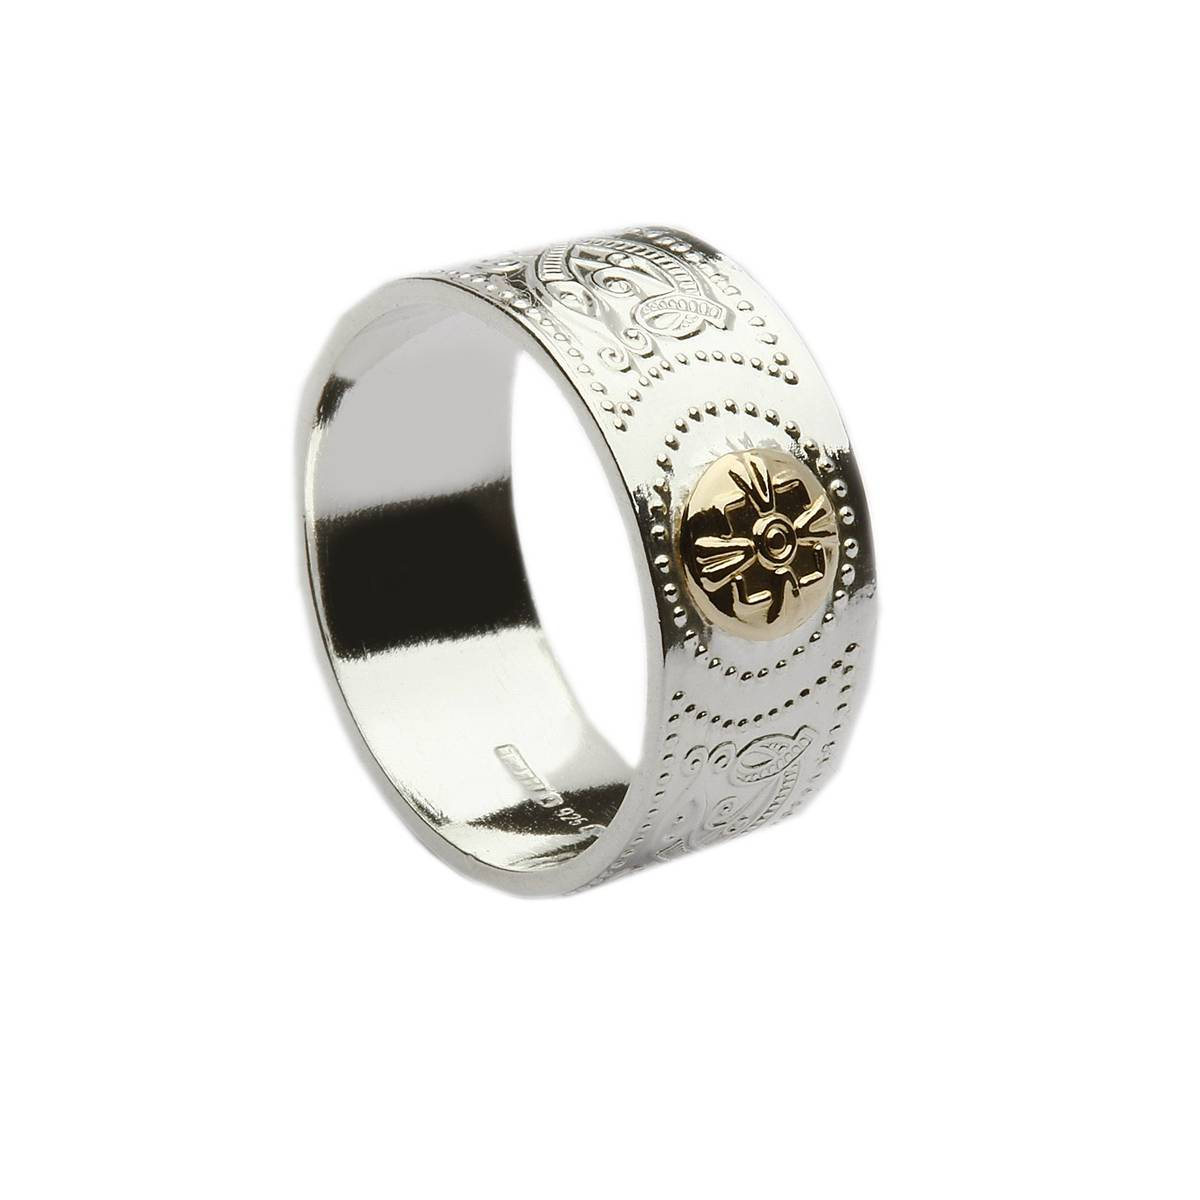 Arda silver ring with Gold shield